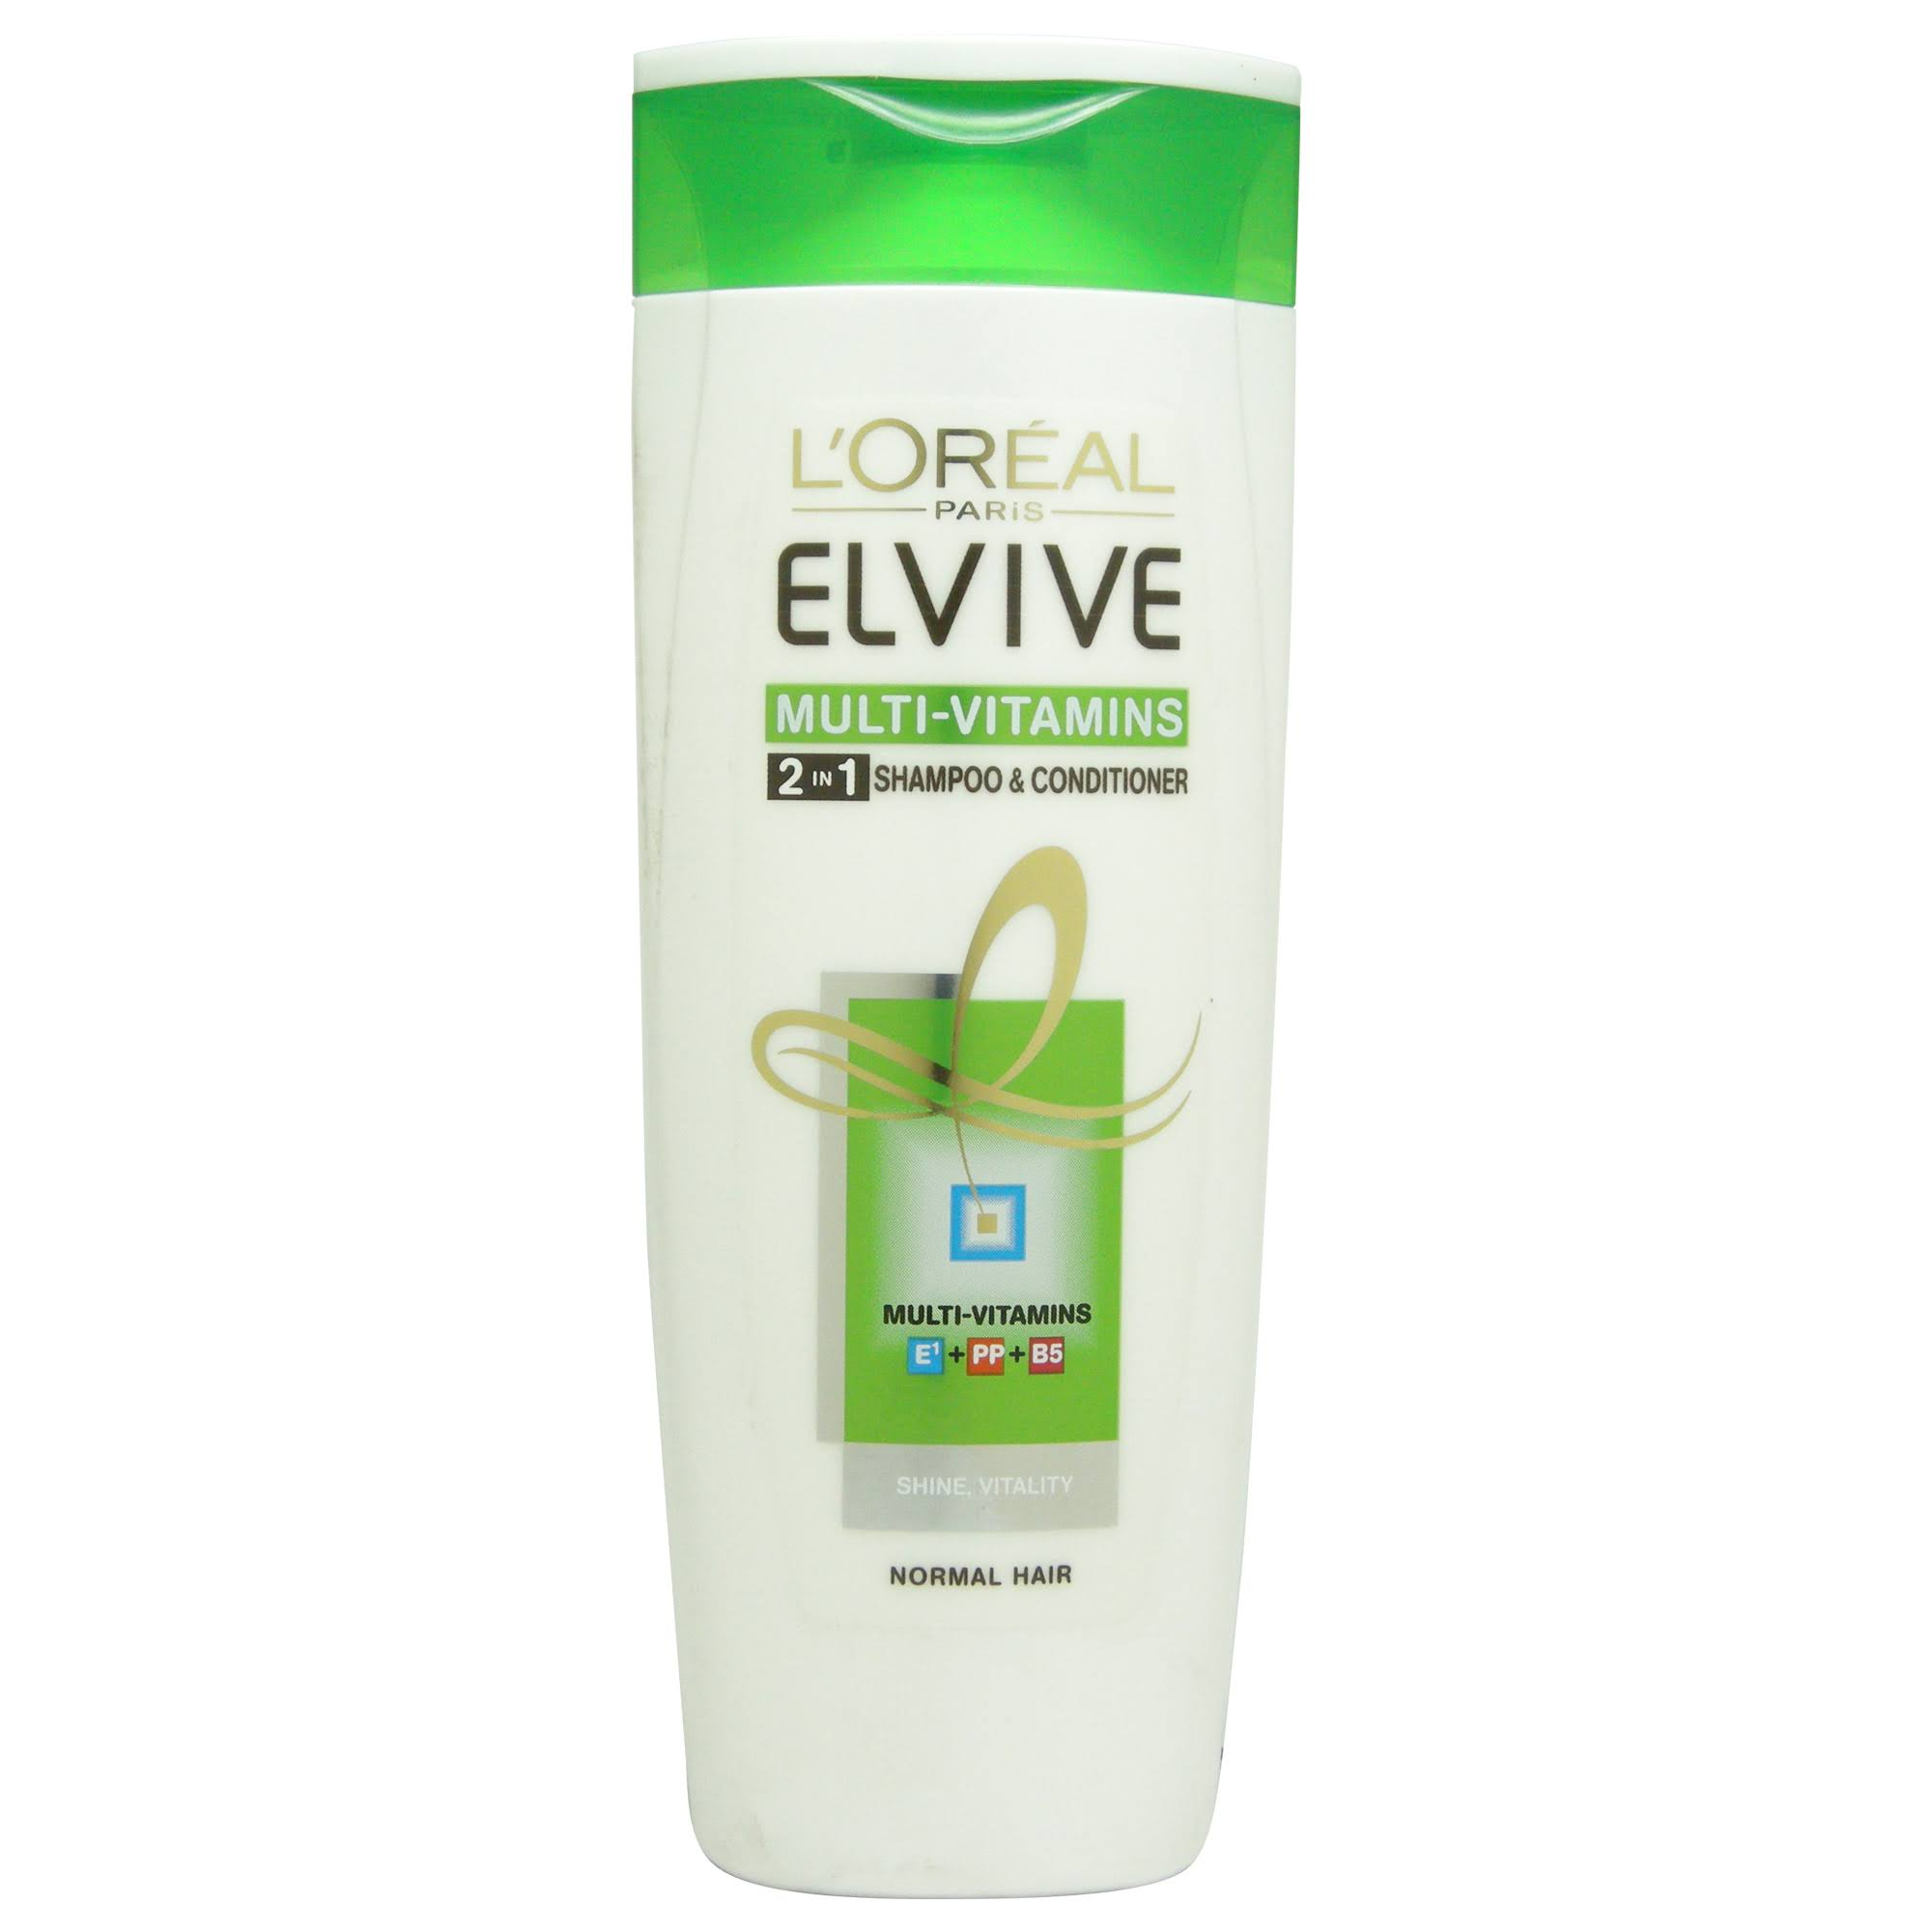 L'Oreal Elvive 2 in 1 Shampoo Conditioner - 400ml